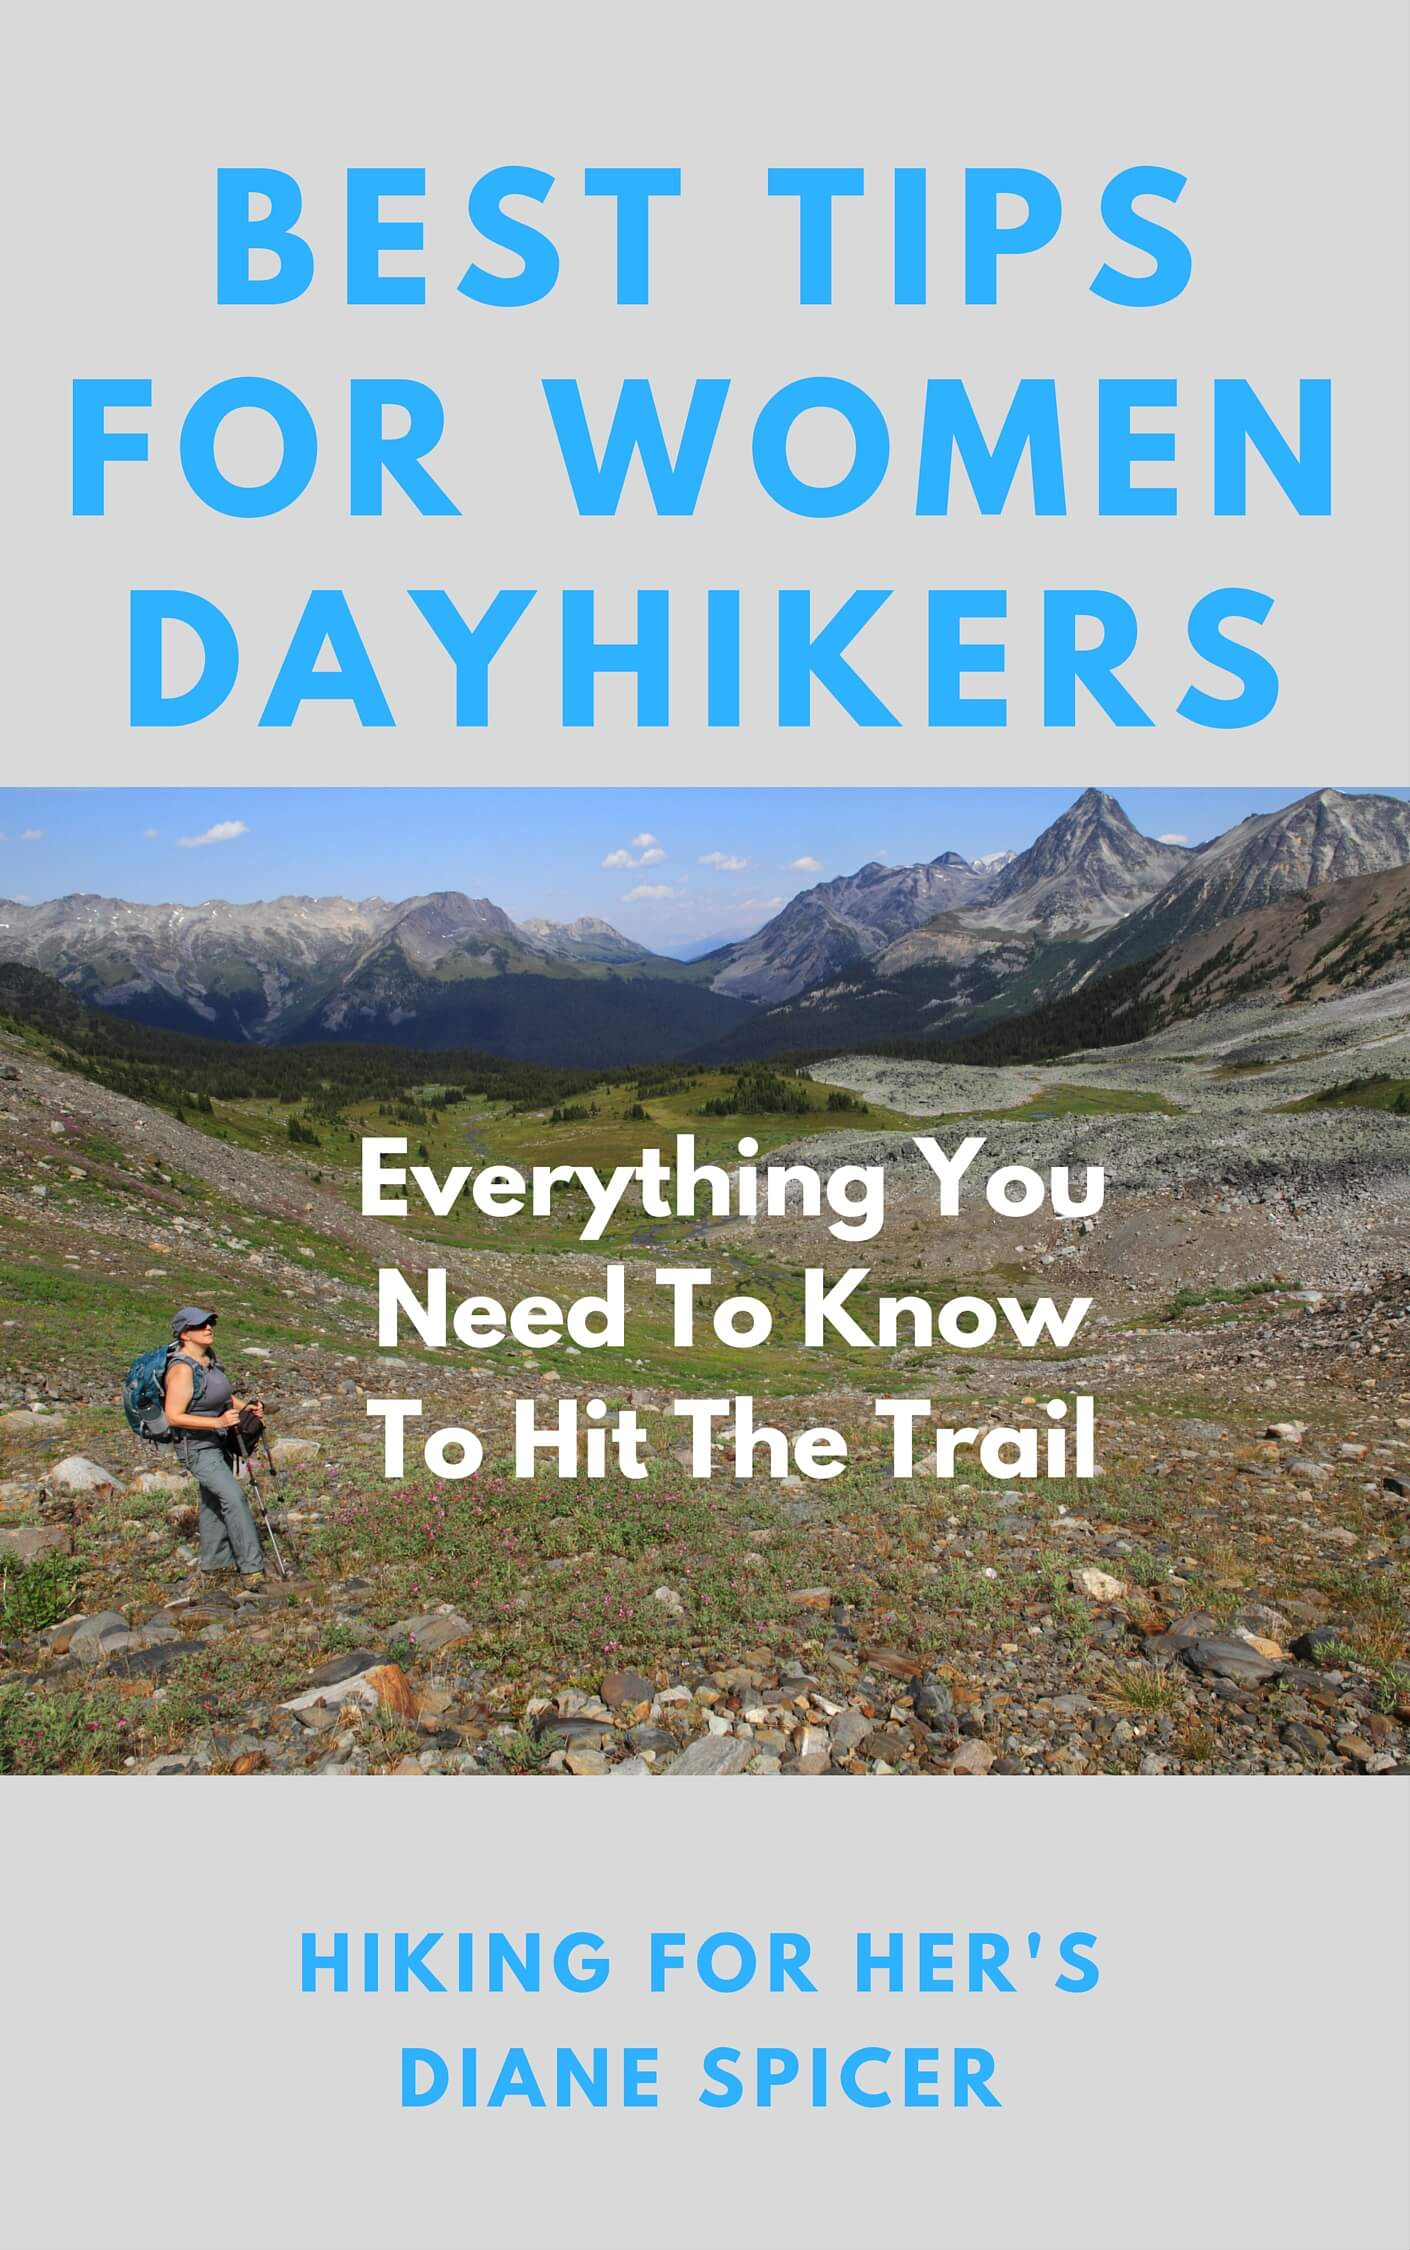 Hiking For Her's book of best tips for women day hikers is ready and waiting to get you on the trail in comfort and style! #hike #hiking #hikingwomen #dayhikes #hikingtips #hikingbook